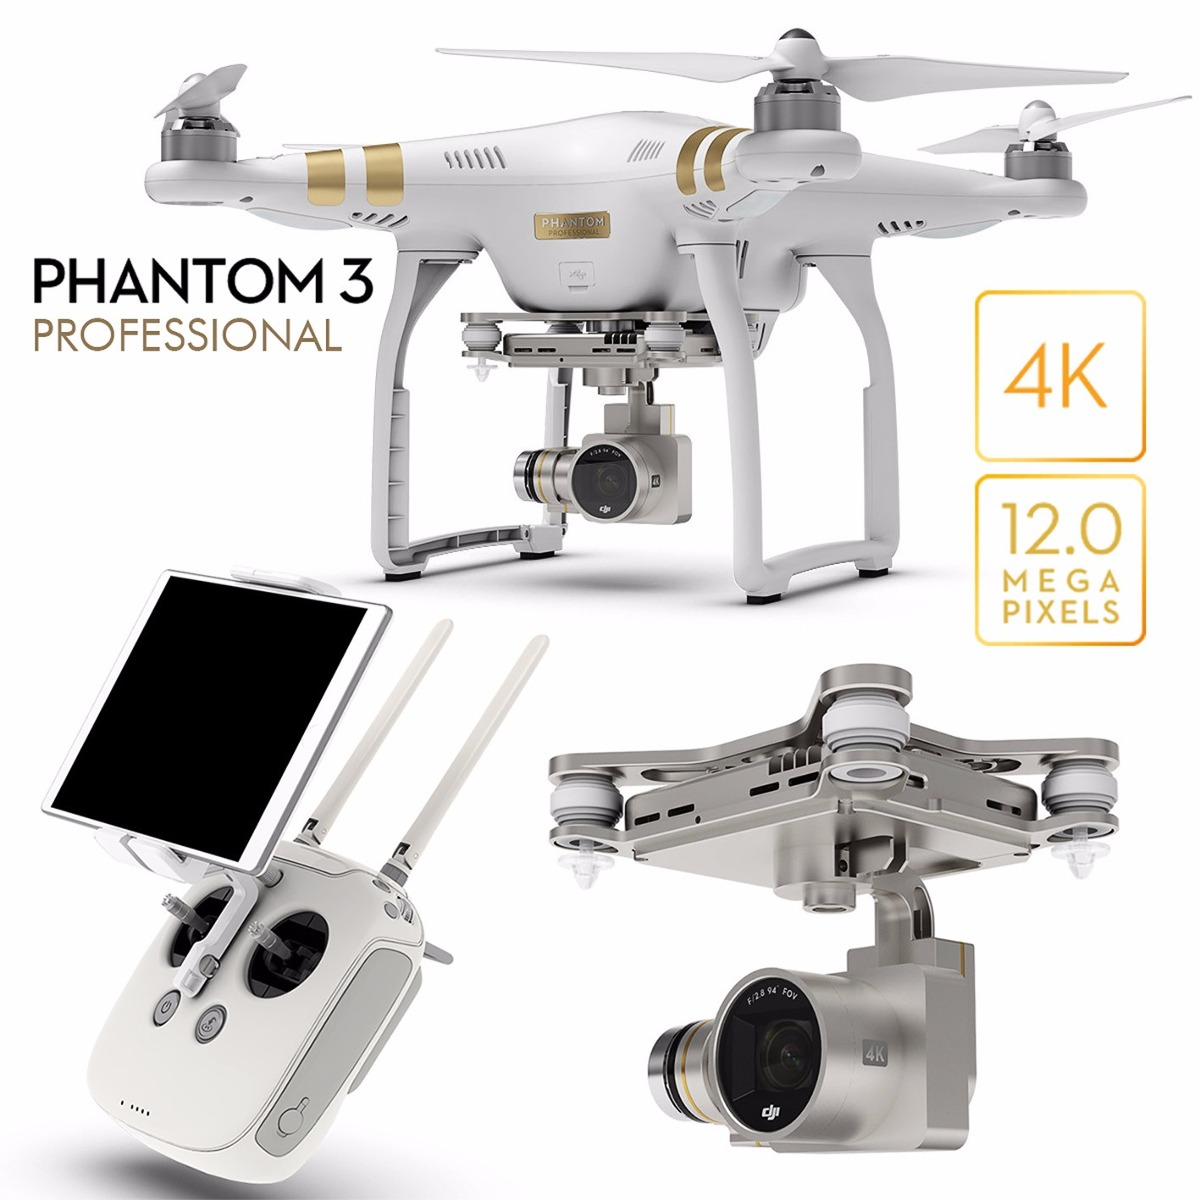 DJI_PHANTOM 3_Professional_03